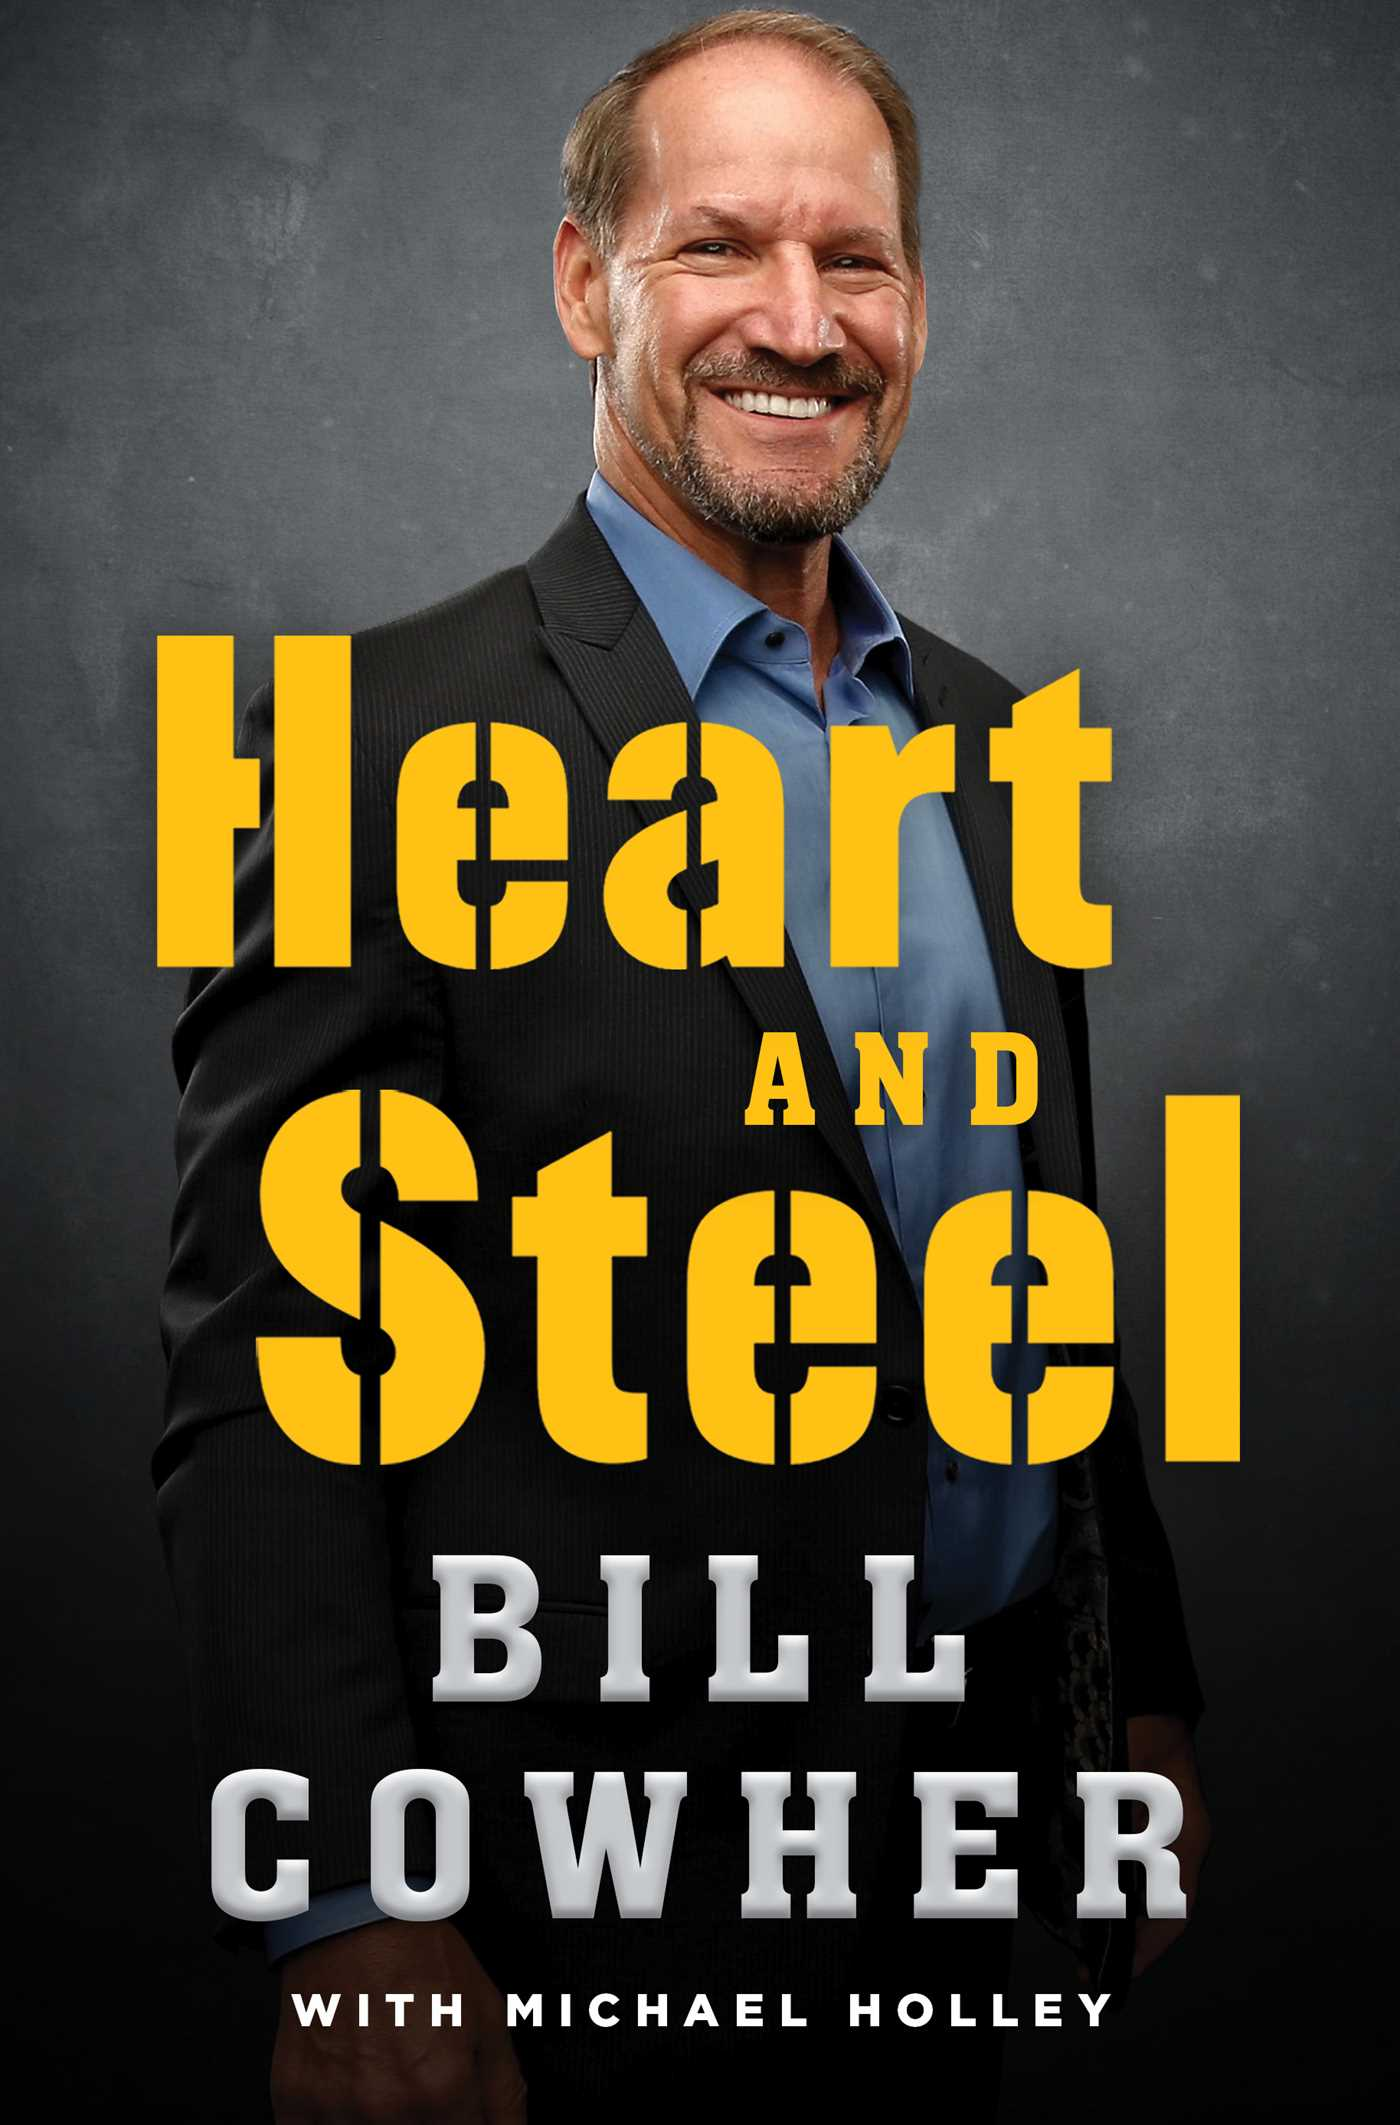 Heart and Steel